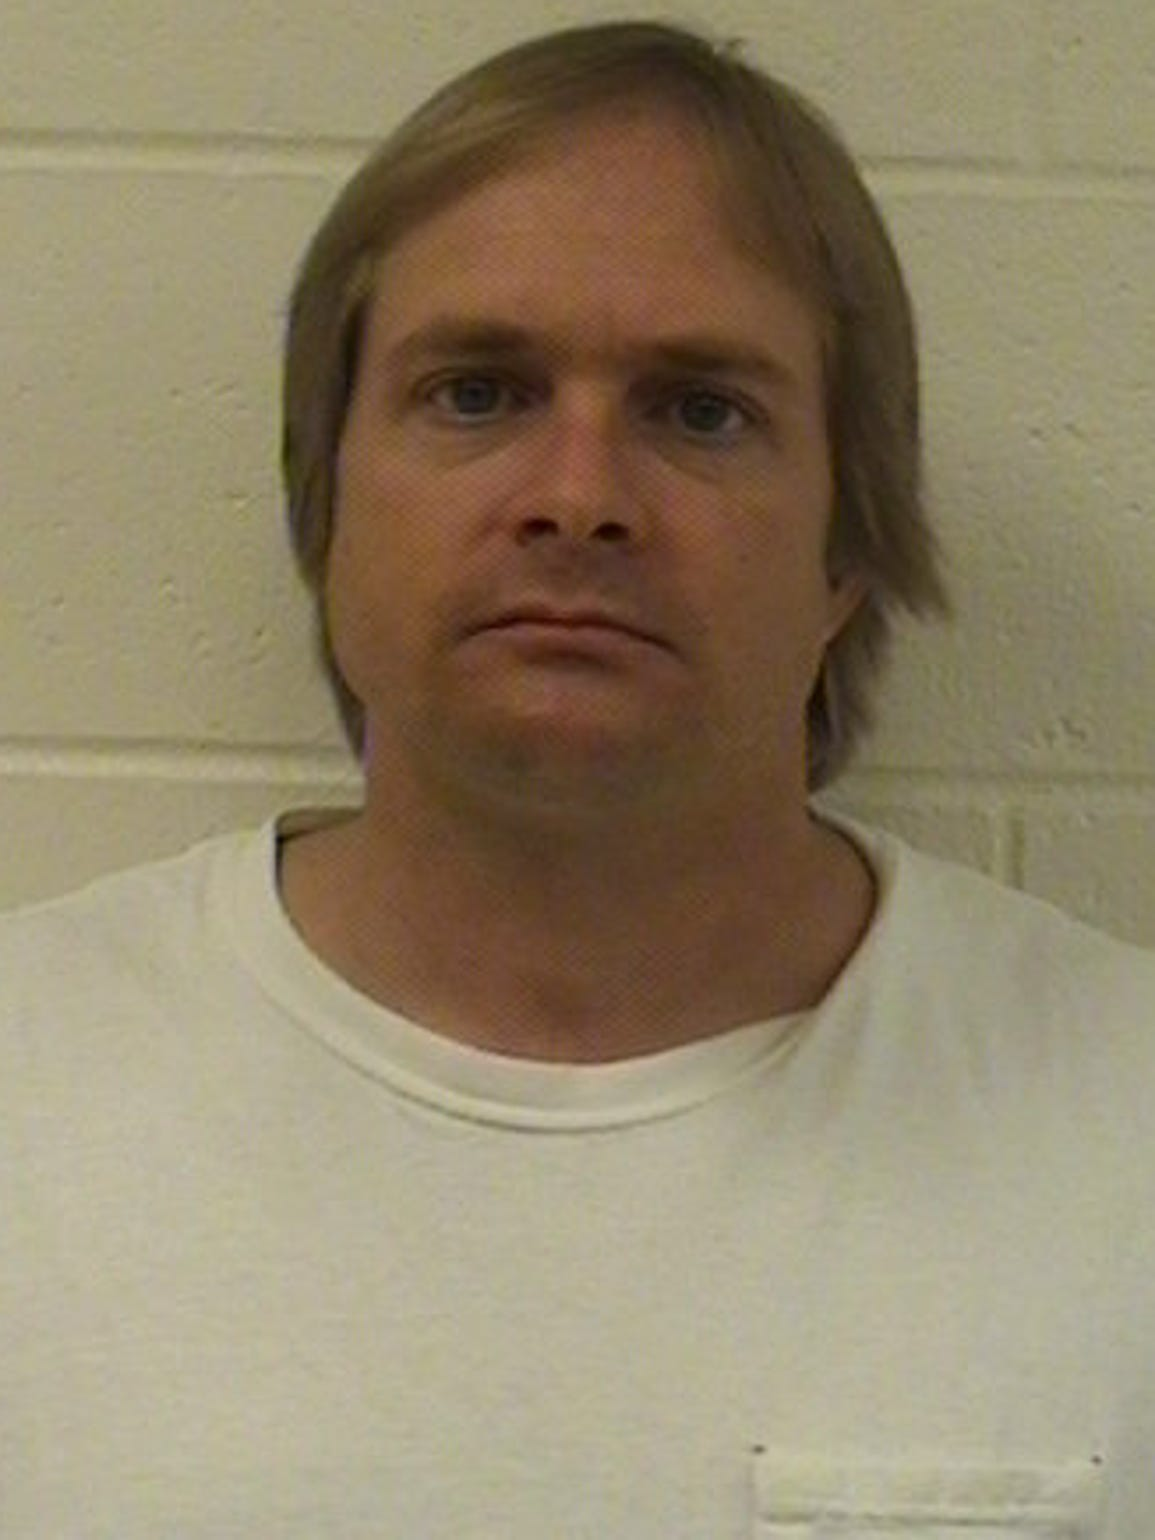 Mugshot of Bryan S. Kaseno from his third OWI.